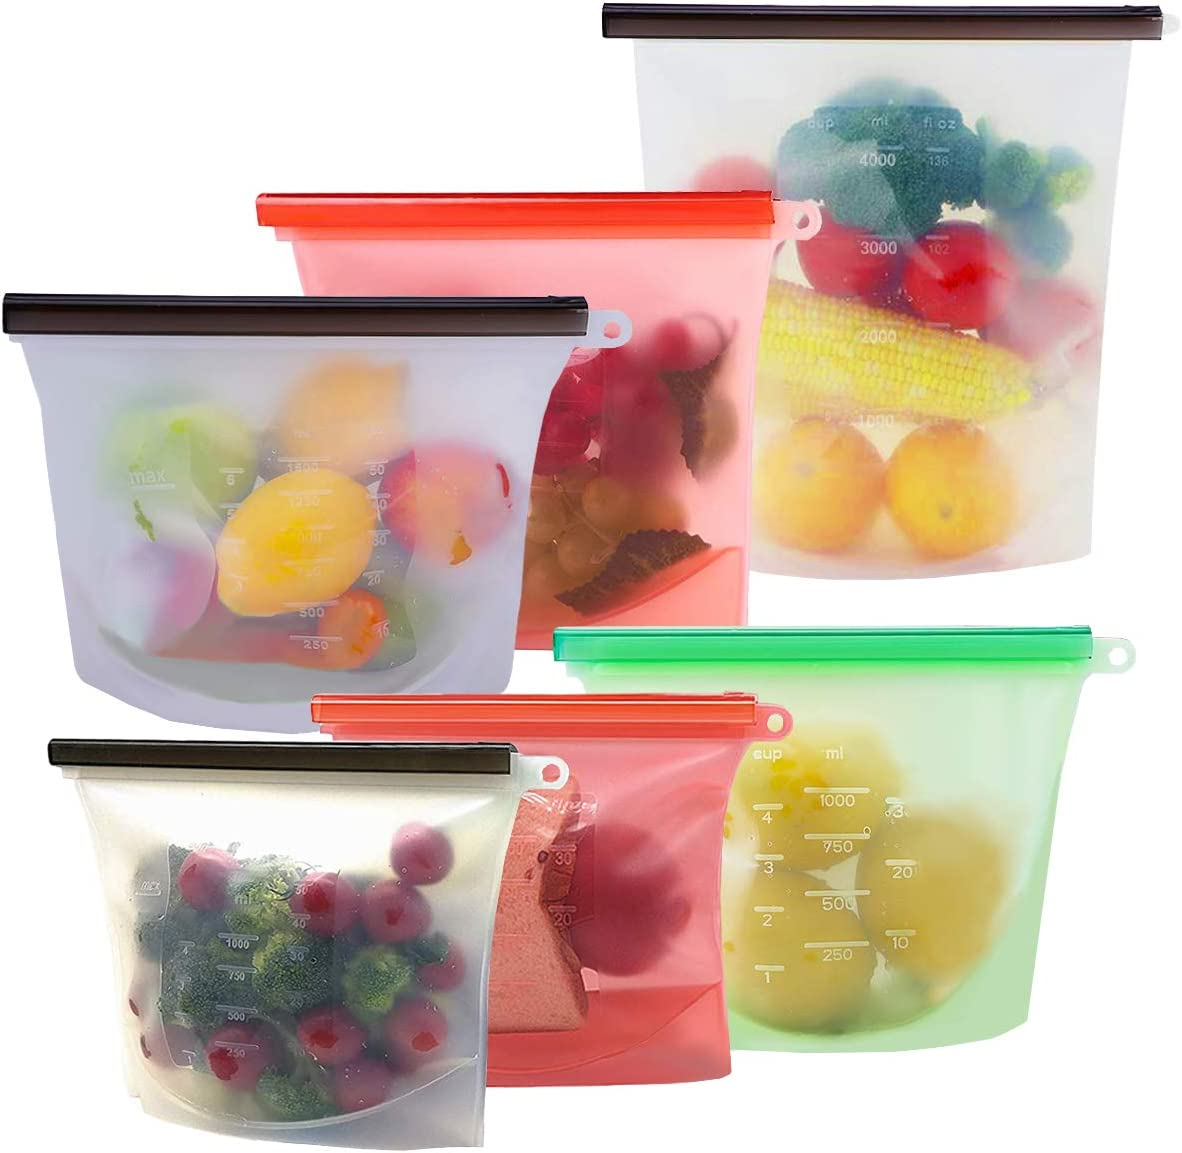 Reusable Silicone Food Storage Bags, KITHELP food storage containers with 1 extra large (4L/ 135z/ 16 cups),2 large (1.5L/ 50oz/ 6 cups) and 3 Medium (1L/ 30oz/ 4 cups)